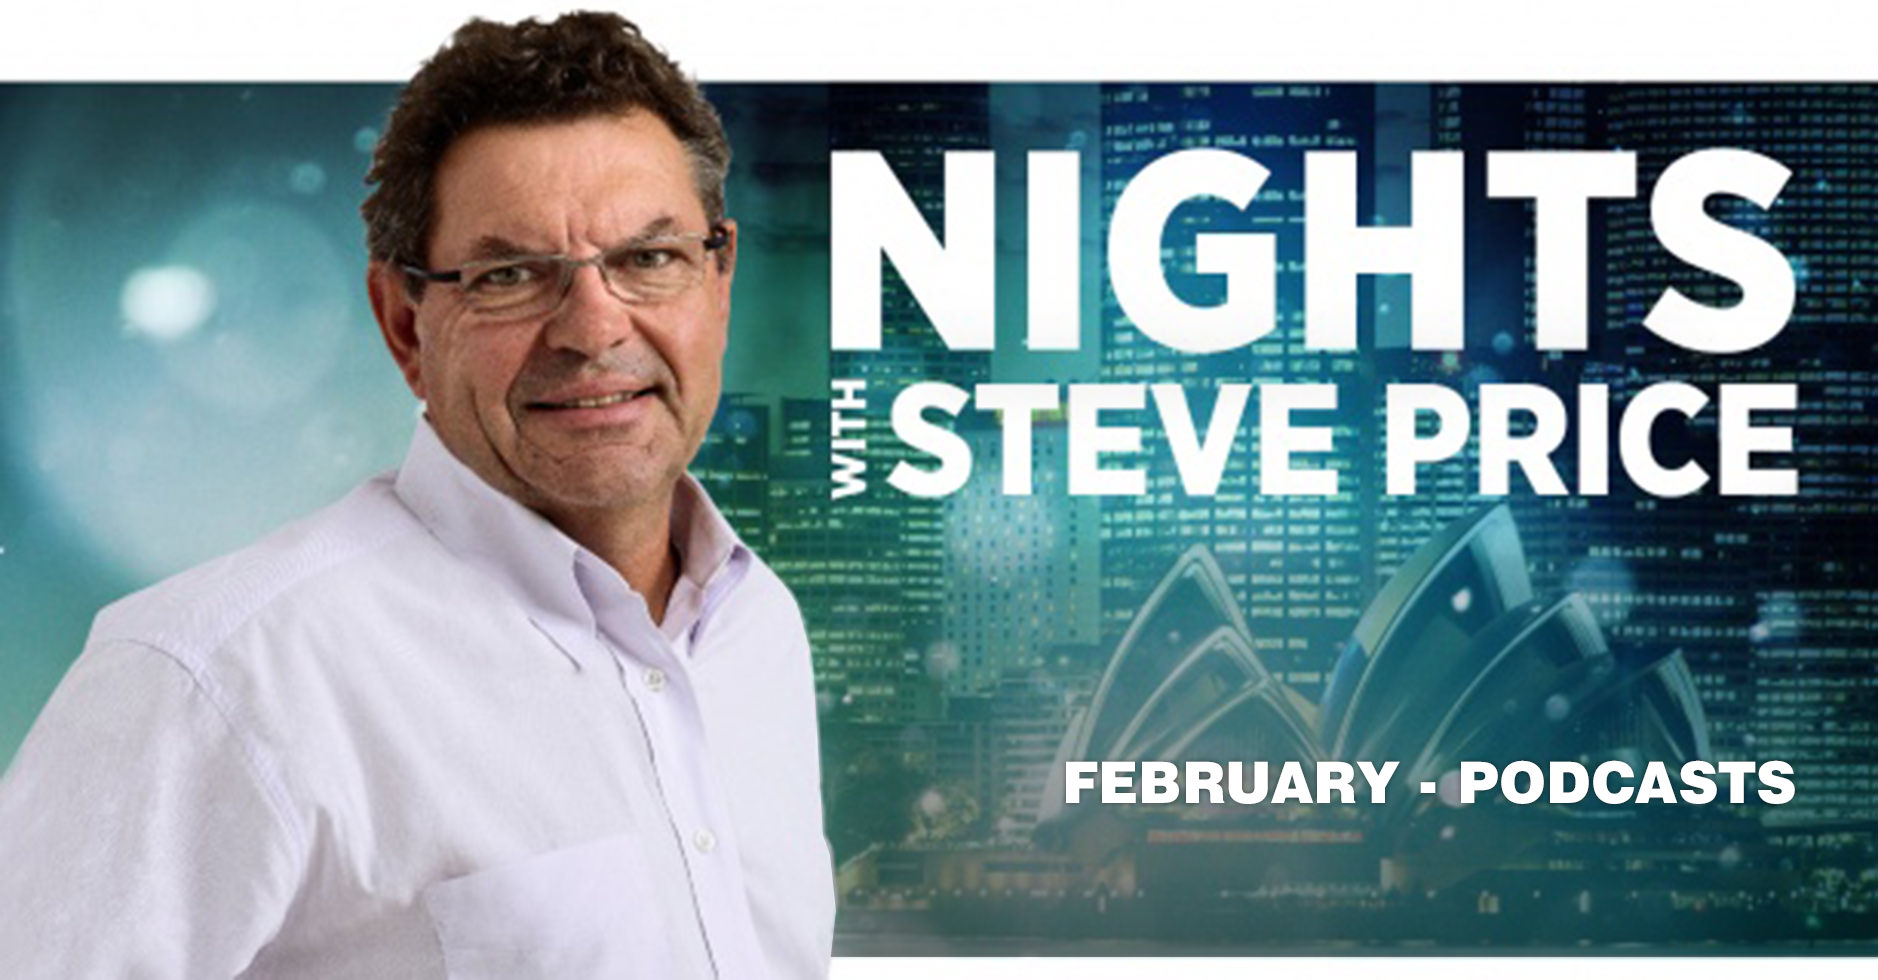 Nights StevePrice Hero Feb The Informed Investor: March 2018 Podcasts